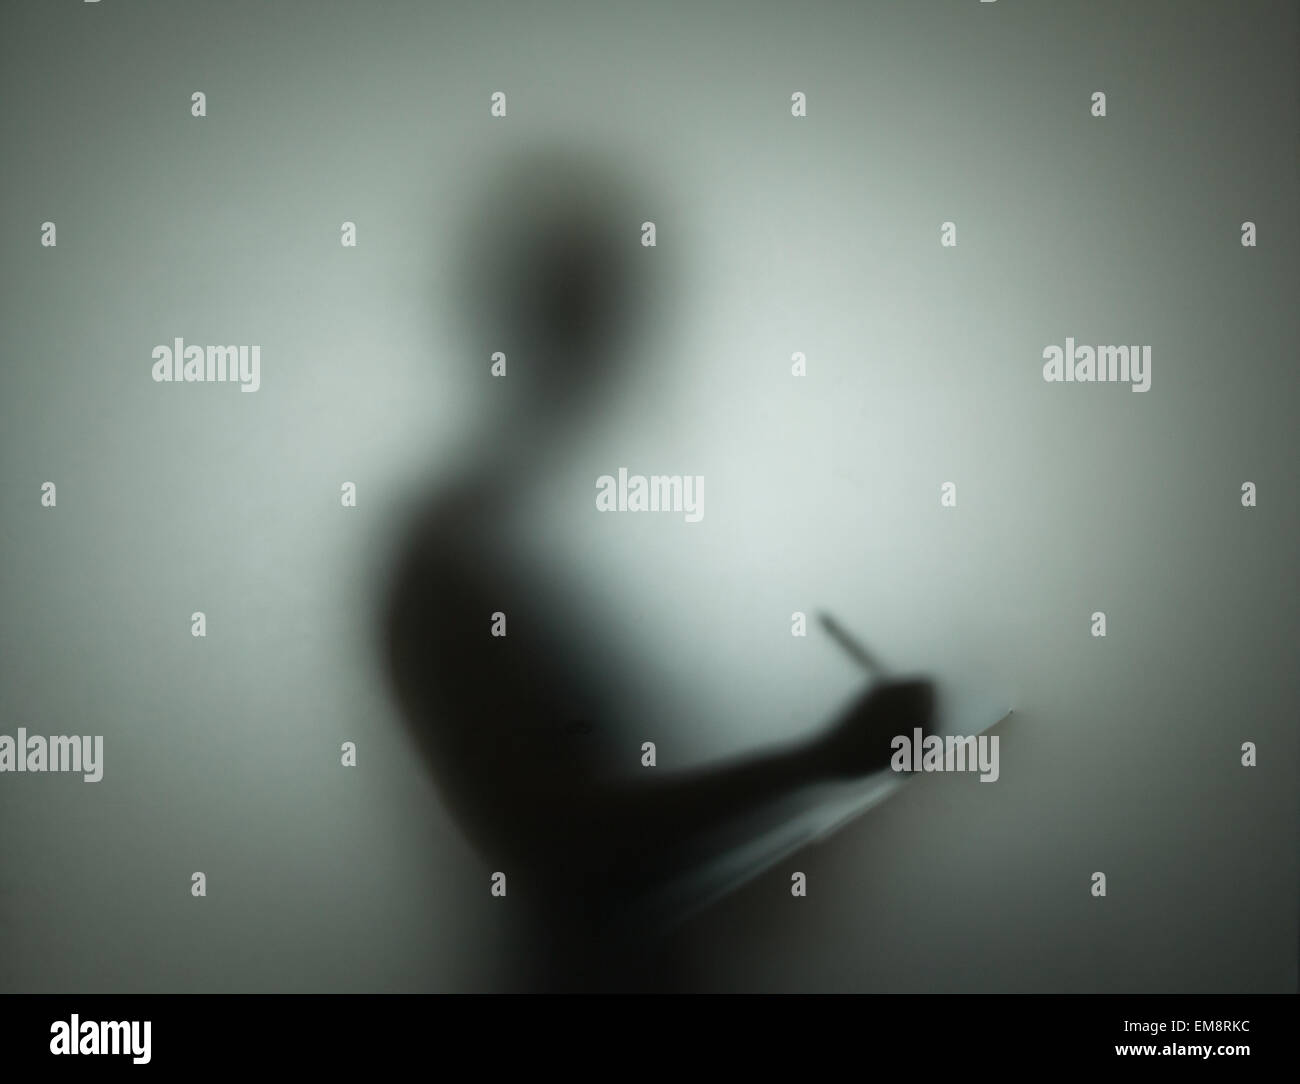 Silhouette of person using pen and clipboard, behind glass - Stock Image